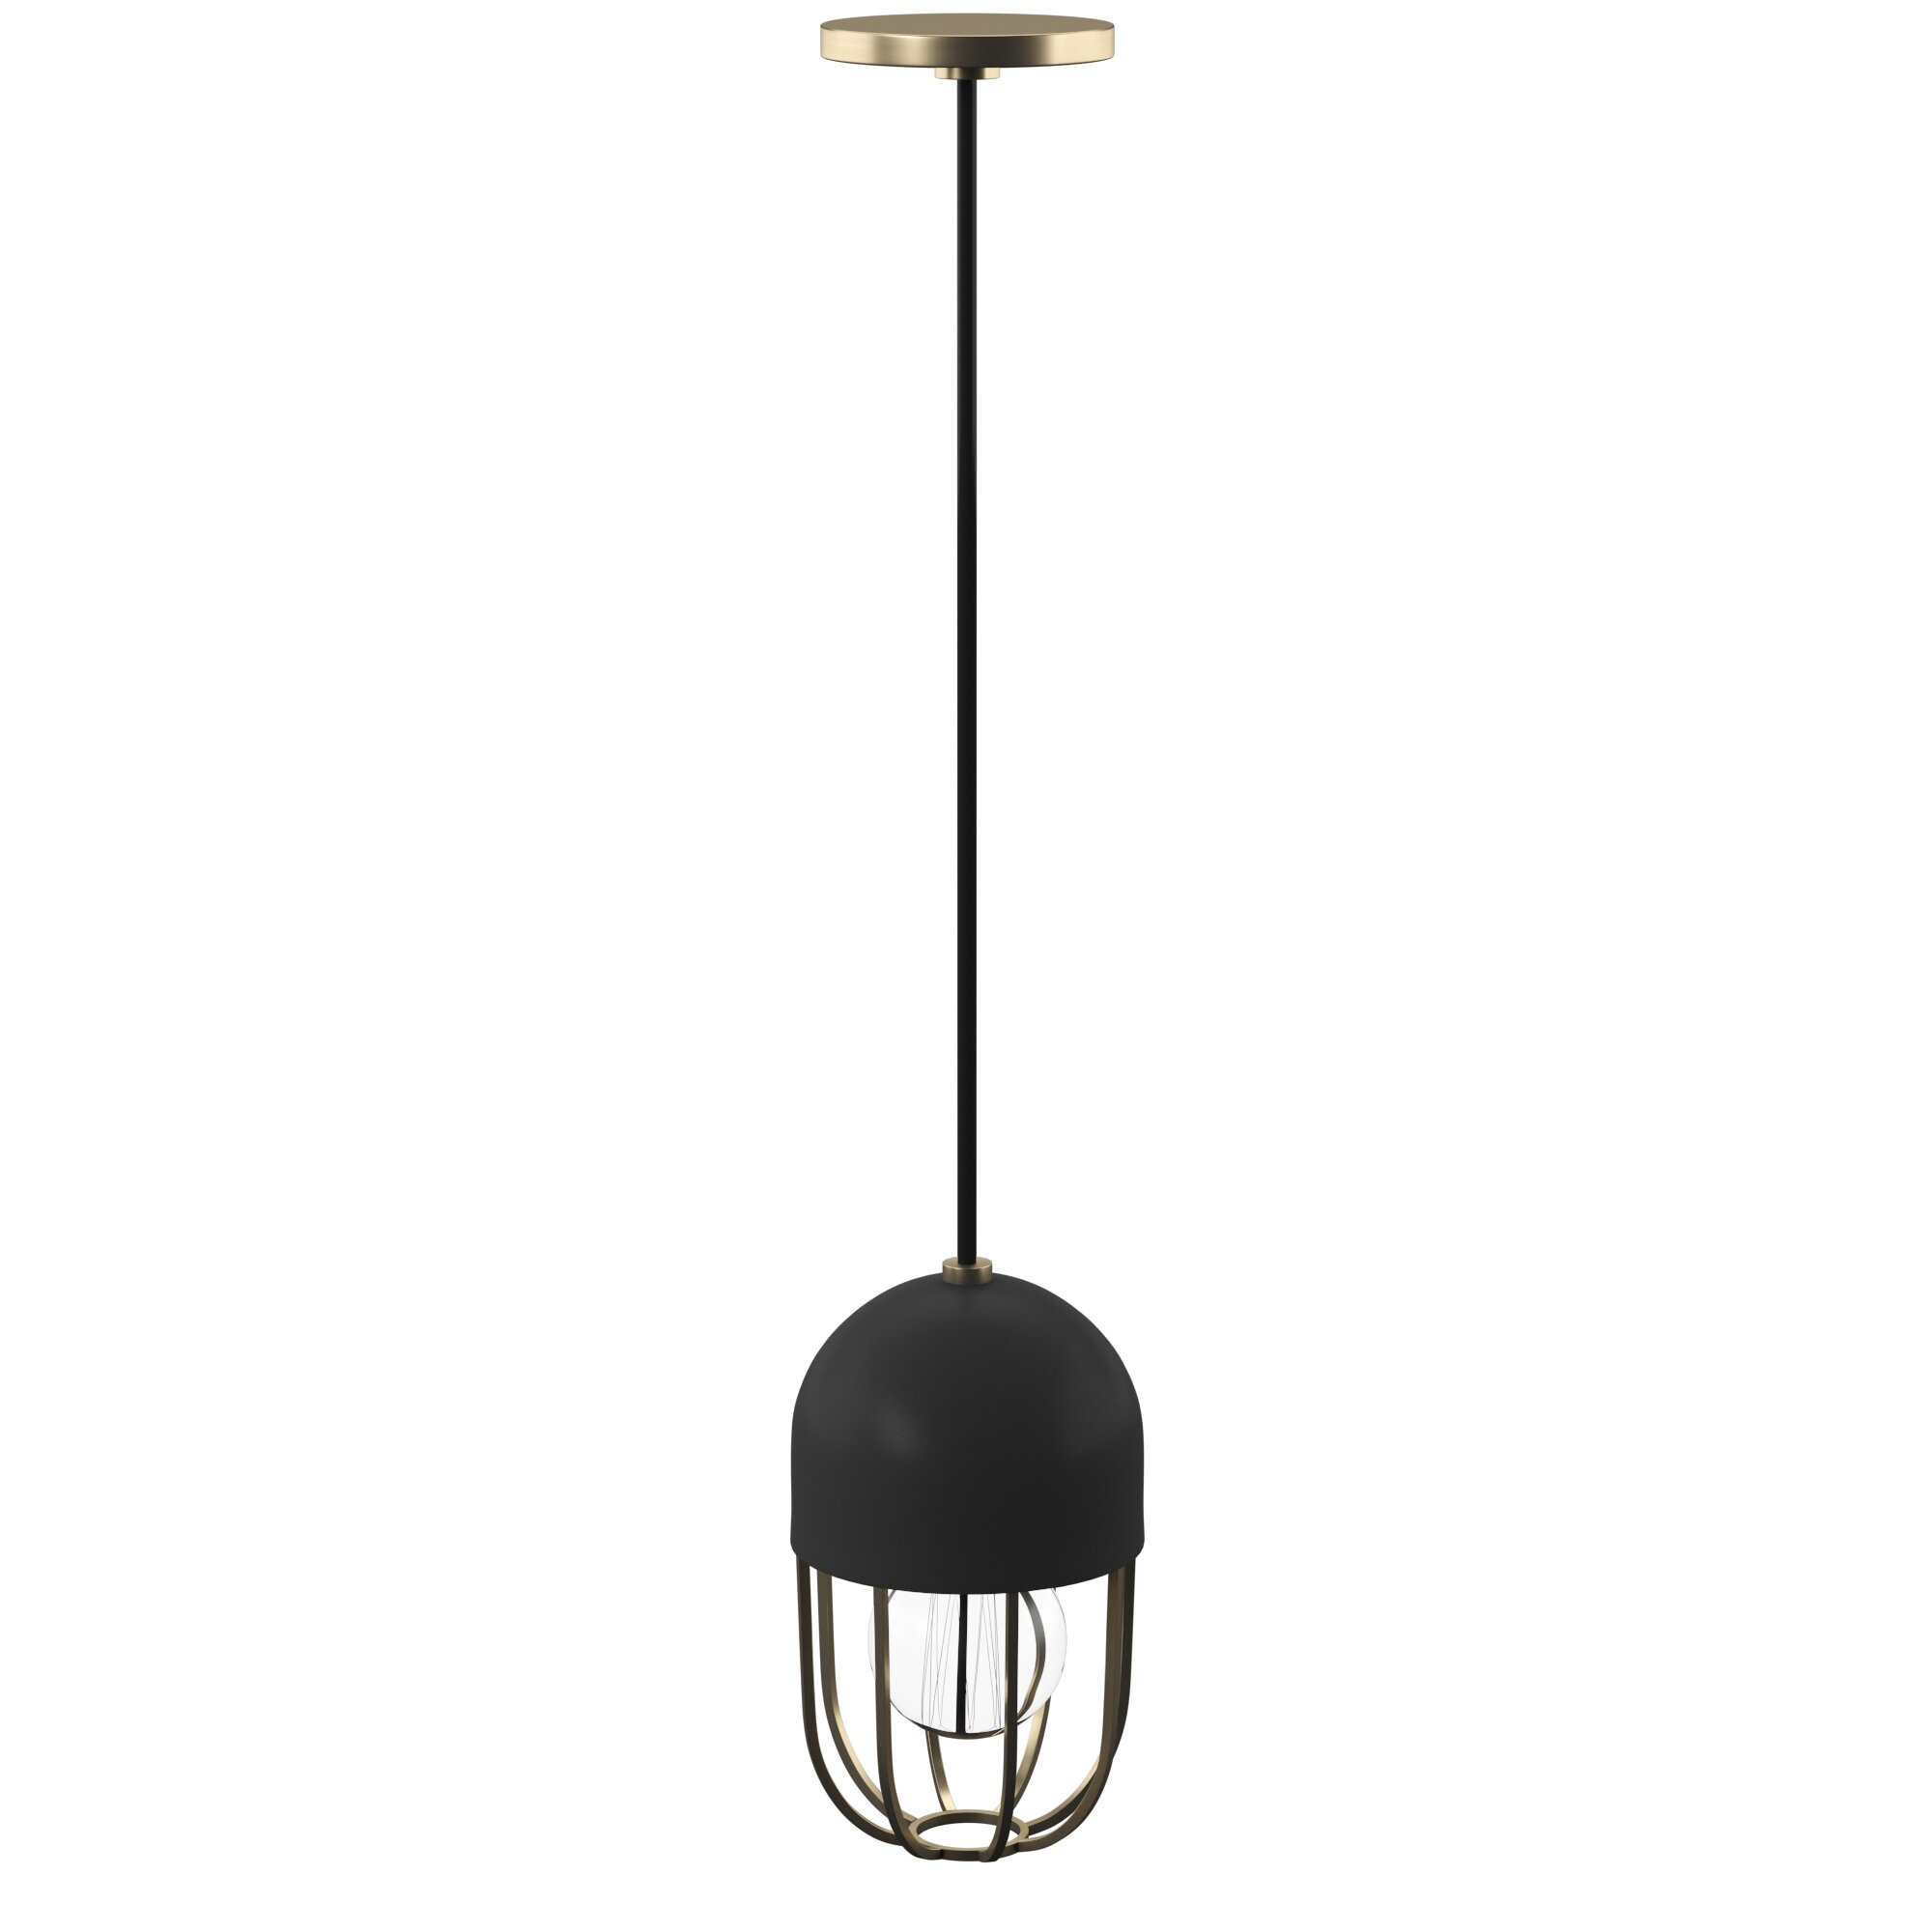 Kater 1 Light Single Dome Pendant Within Priston 1 Light Single Dome Pendants (Photo 15 of 30)